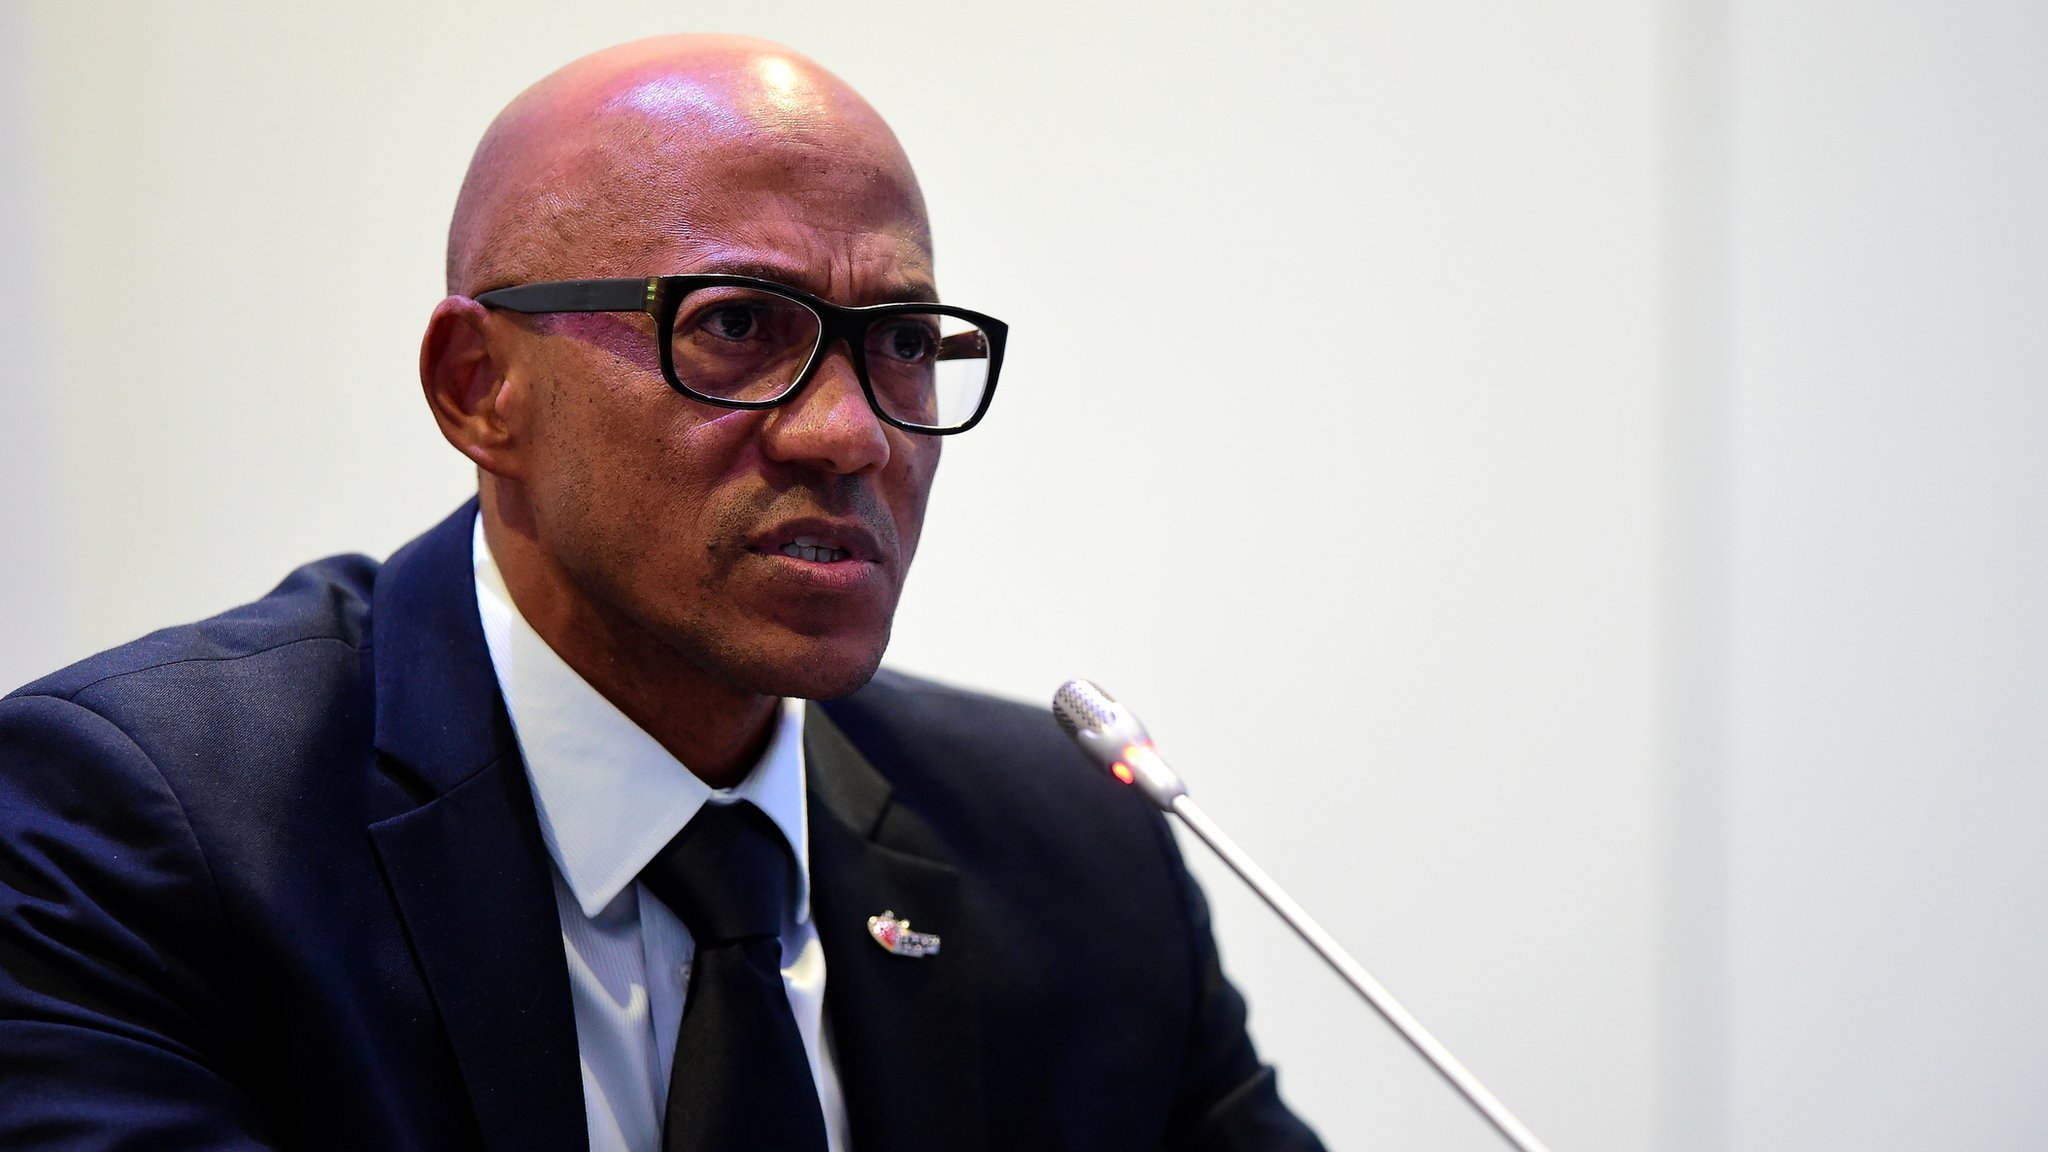 Four-time Olympic medallist Fredericks suspended by IOC